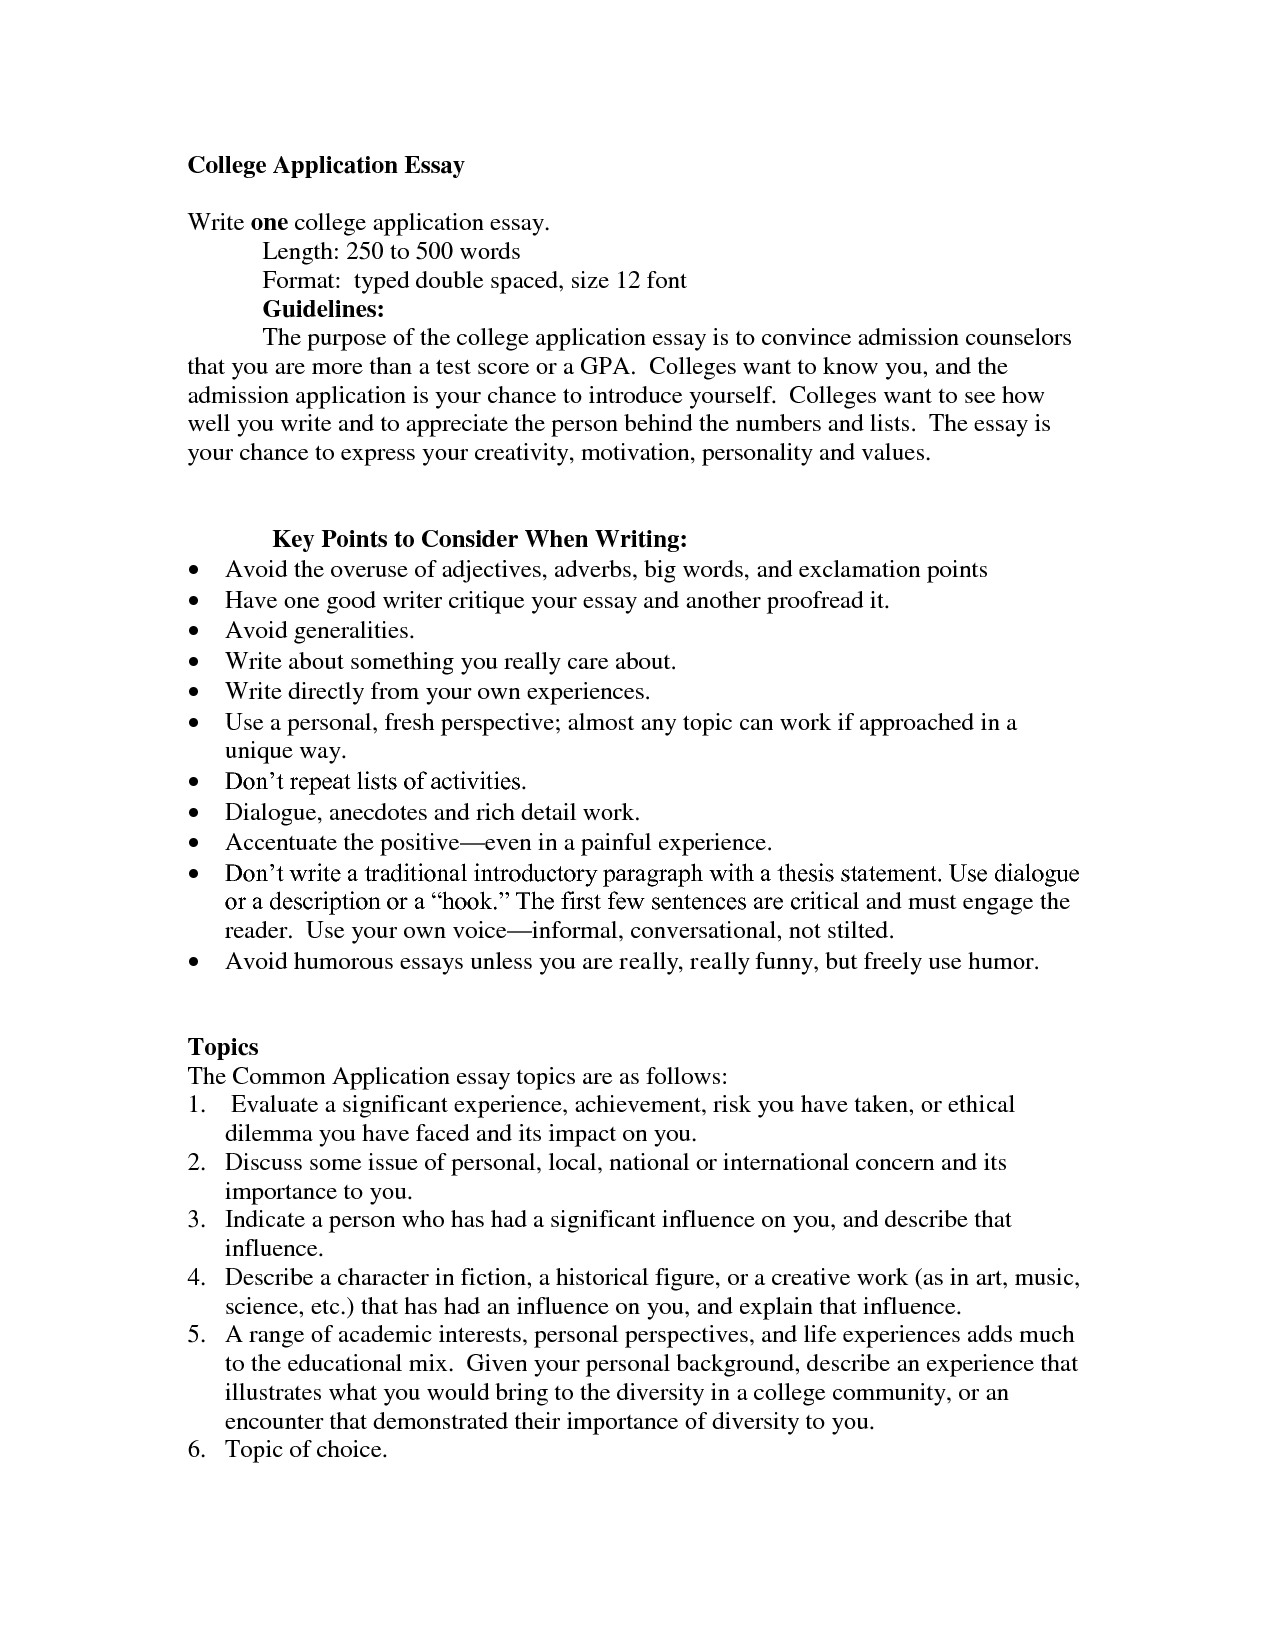 015 College Application Essay Outline Professional Writing Website Throughout Format Writer Com Outstanding My Writer.com Pro Reviews Comparative Full